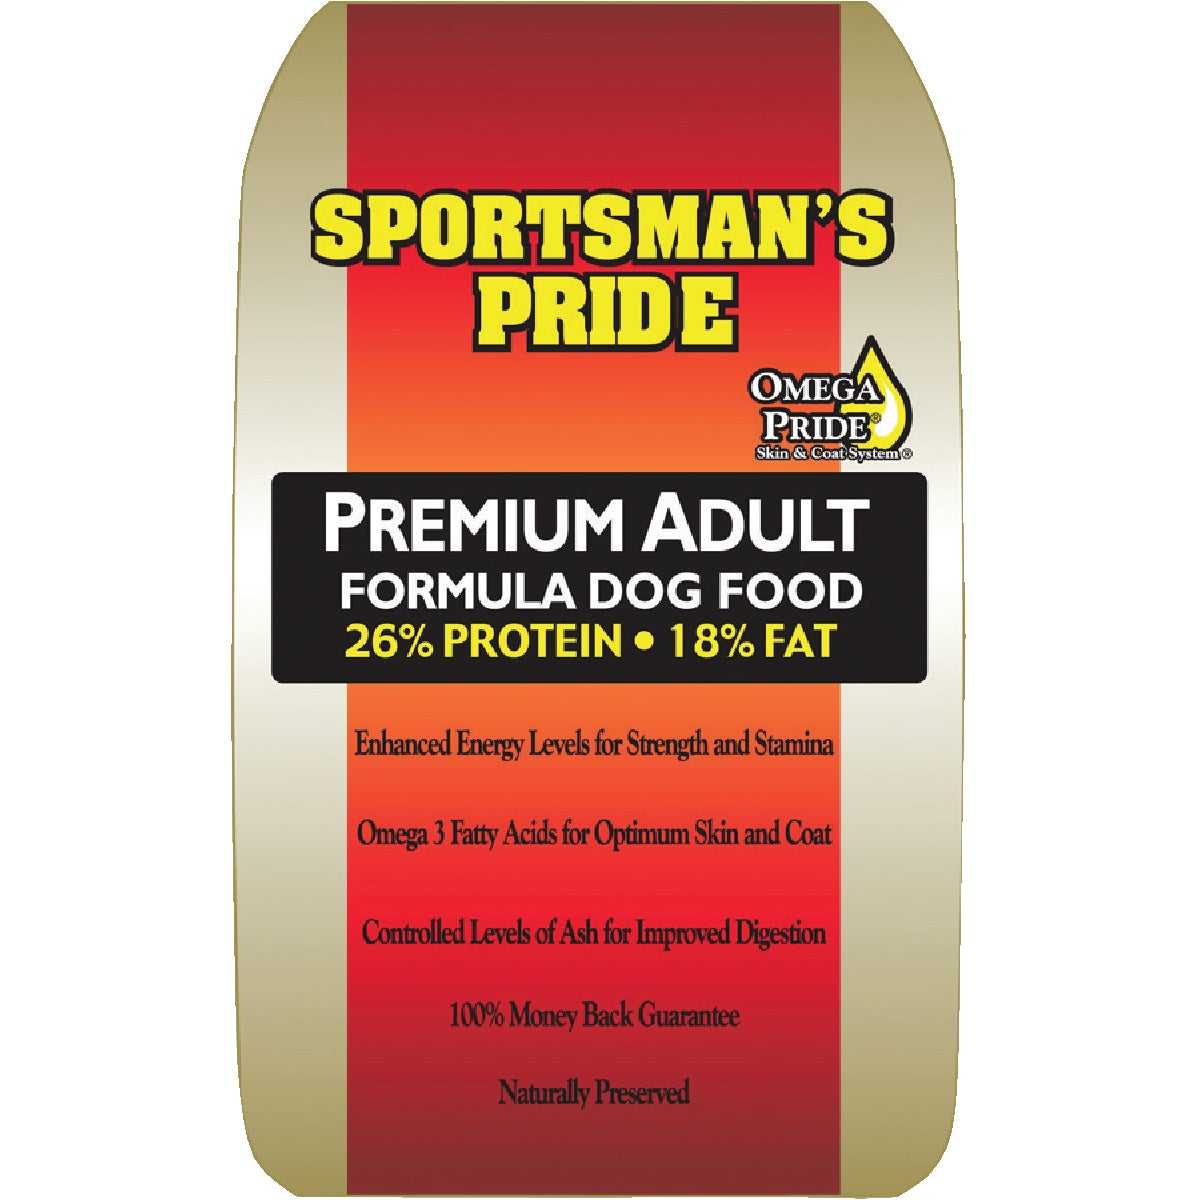 50LB ADULT PREM DOG FOOD - 10115 by Sunshine Mills